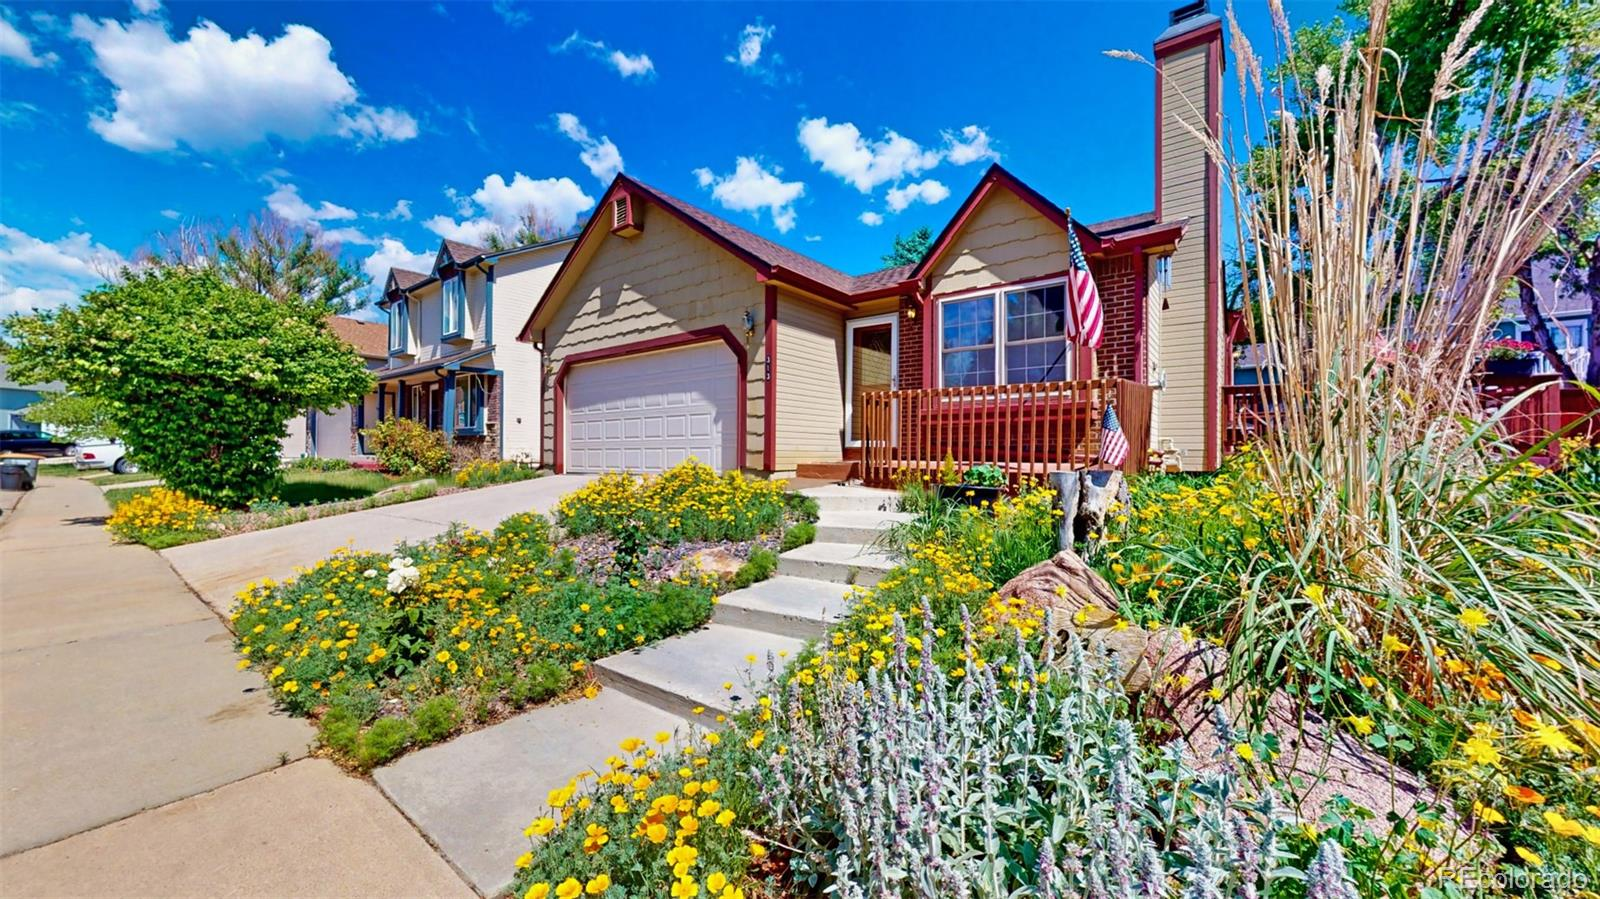 MLS# 3885943 - 35 - 313 Mulberry Circle, Broomfield, CO 80020